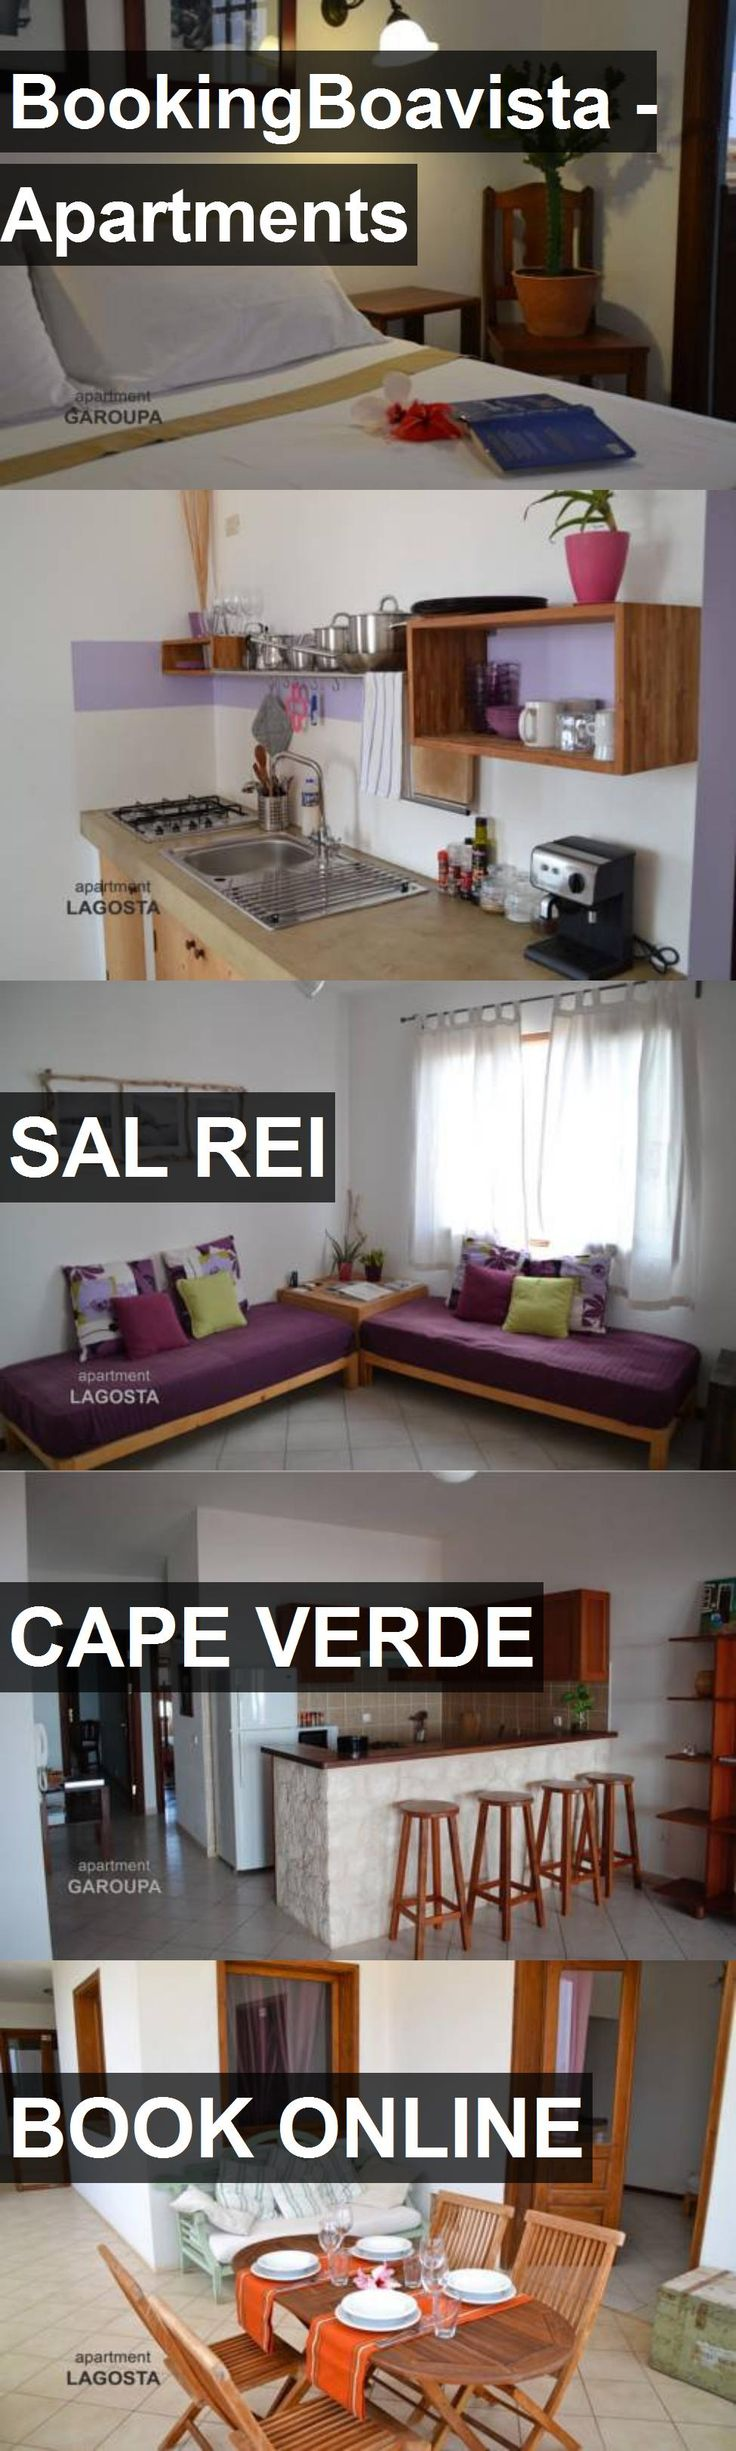 BookingBoavista - Apartments in Sal Rei, Cape Verde. For more information, photos, reviews and best prices please follow the link. #CapeVerde #SalRei #travel #vacation #apartment